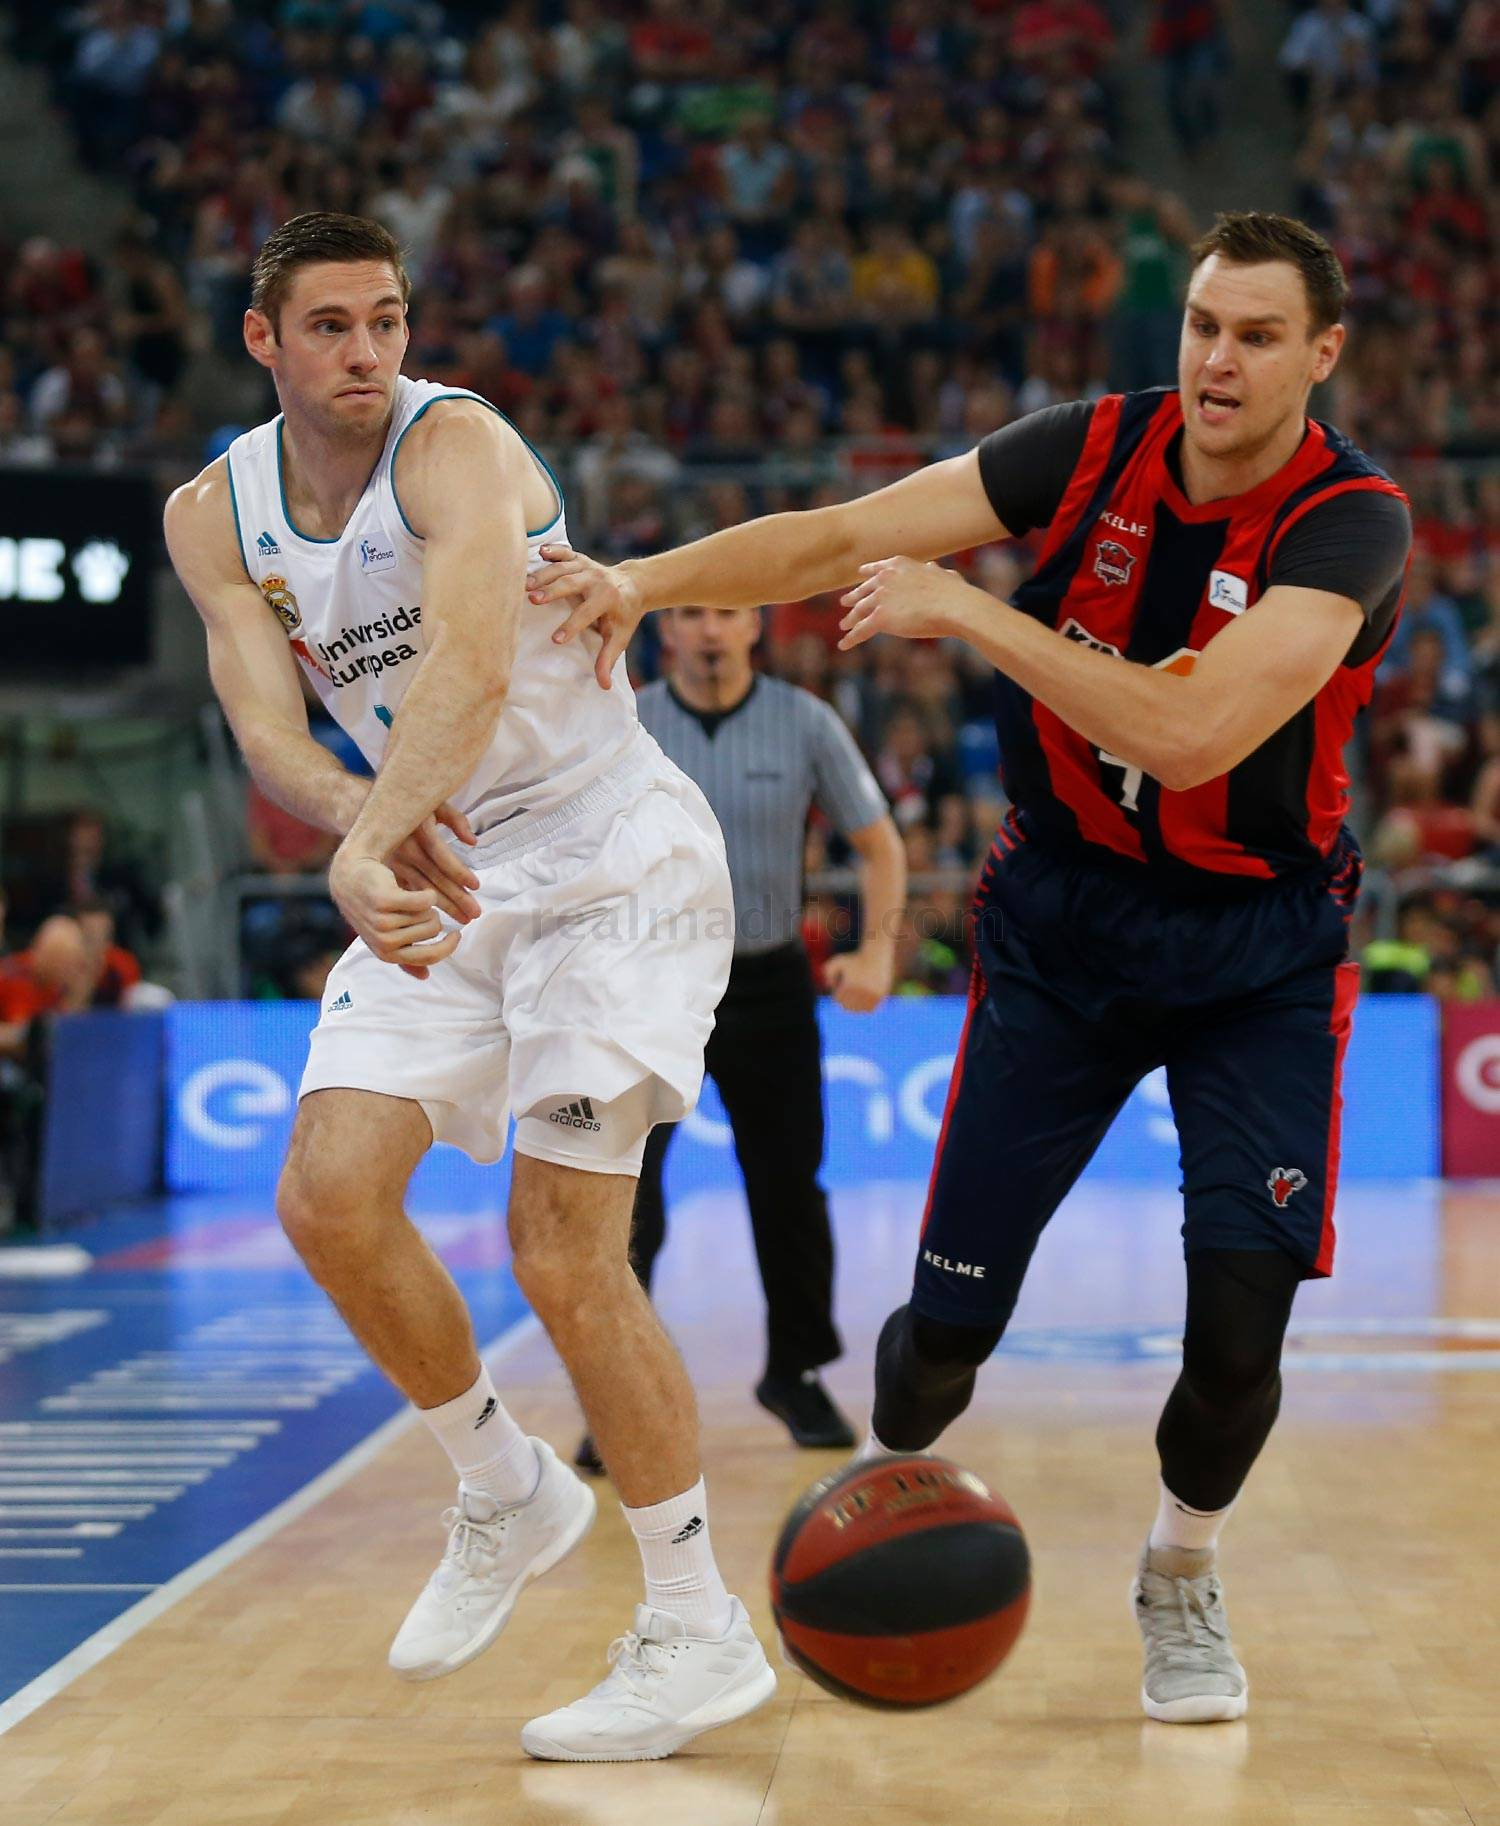 Real Madrid - Kirolbet Baskonia - Real Madrid  - 20-06-2018